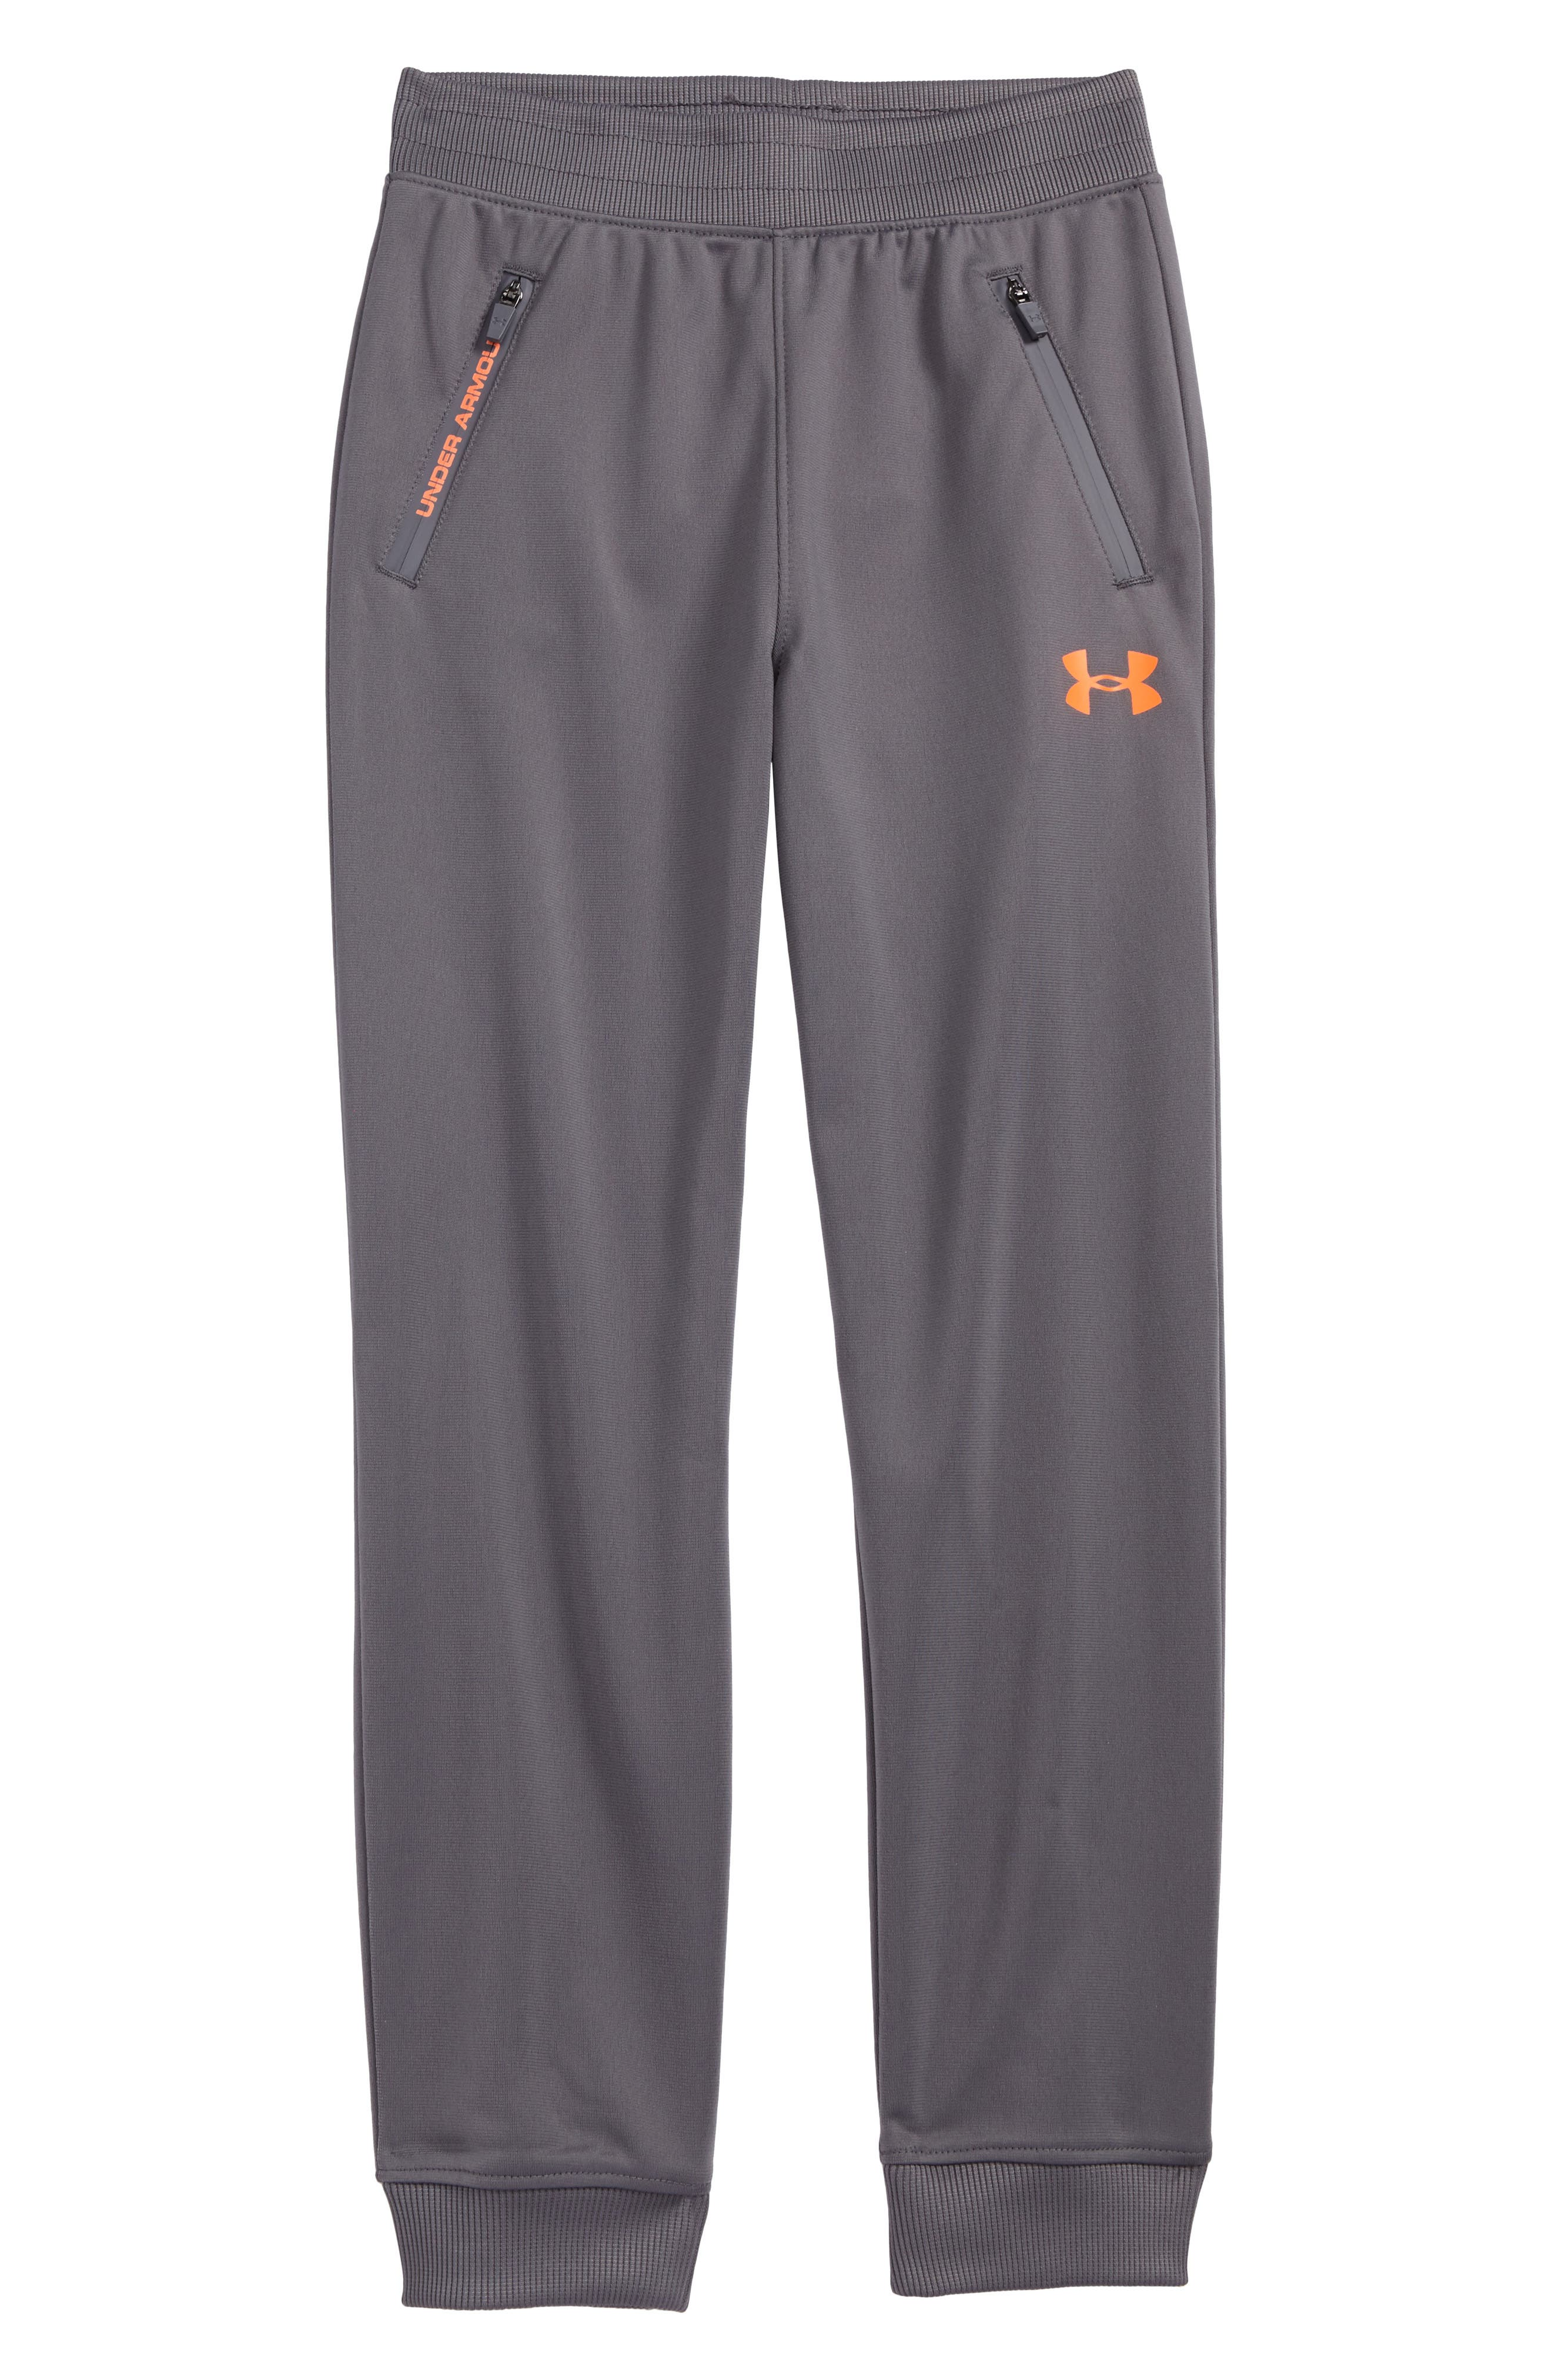 Main Image - Under Armour Pennant 2.0 Tapered Pants (Toddler Boys & Little Boys)